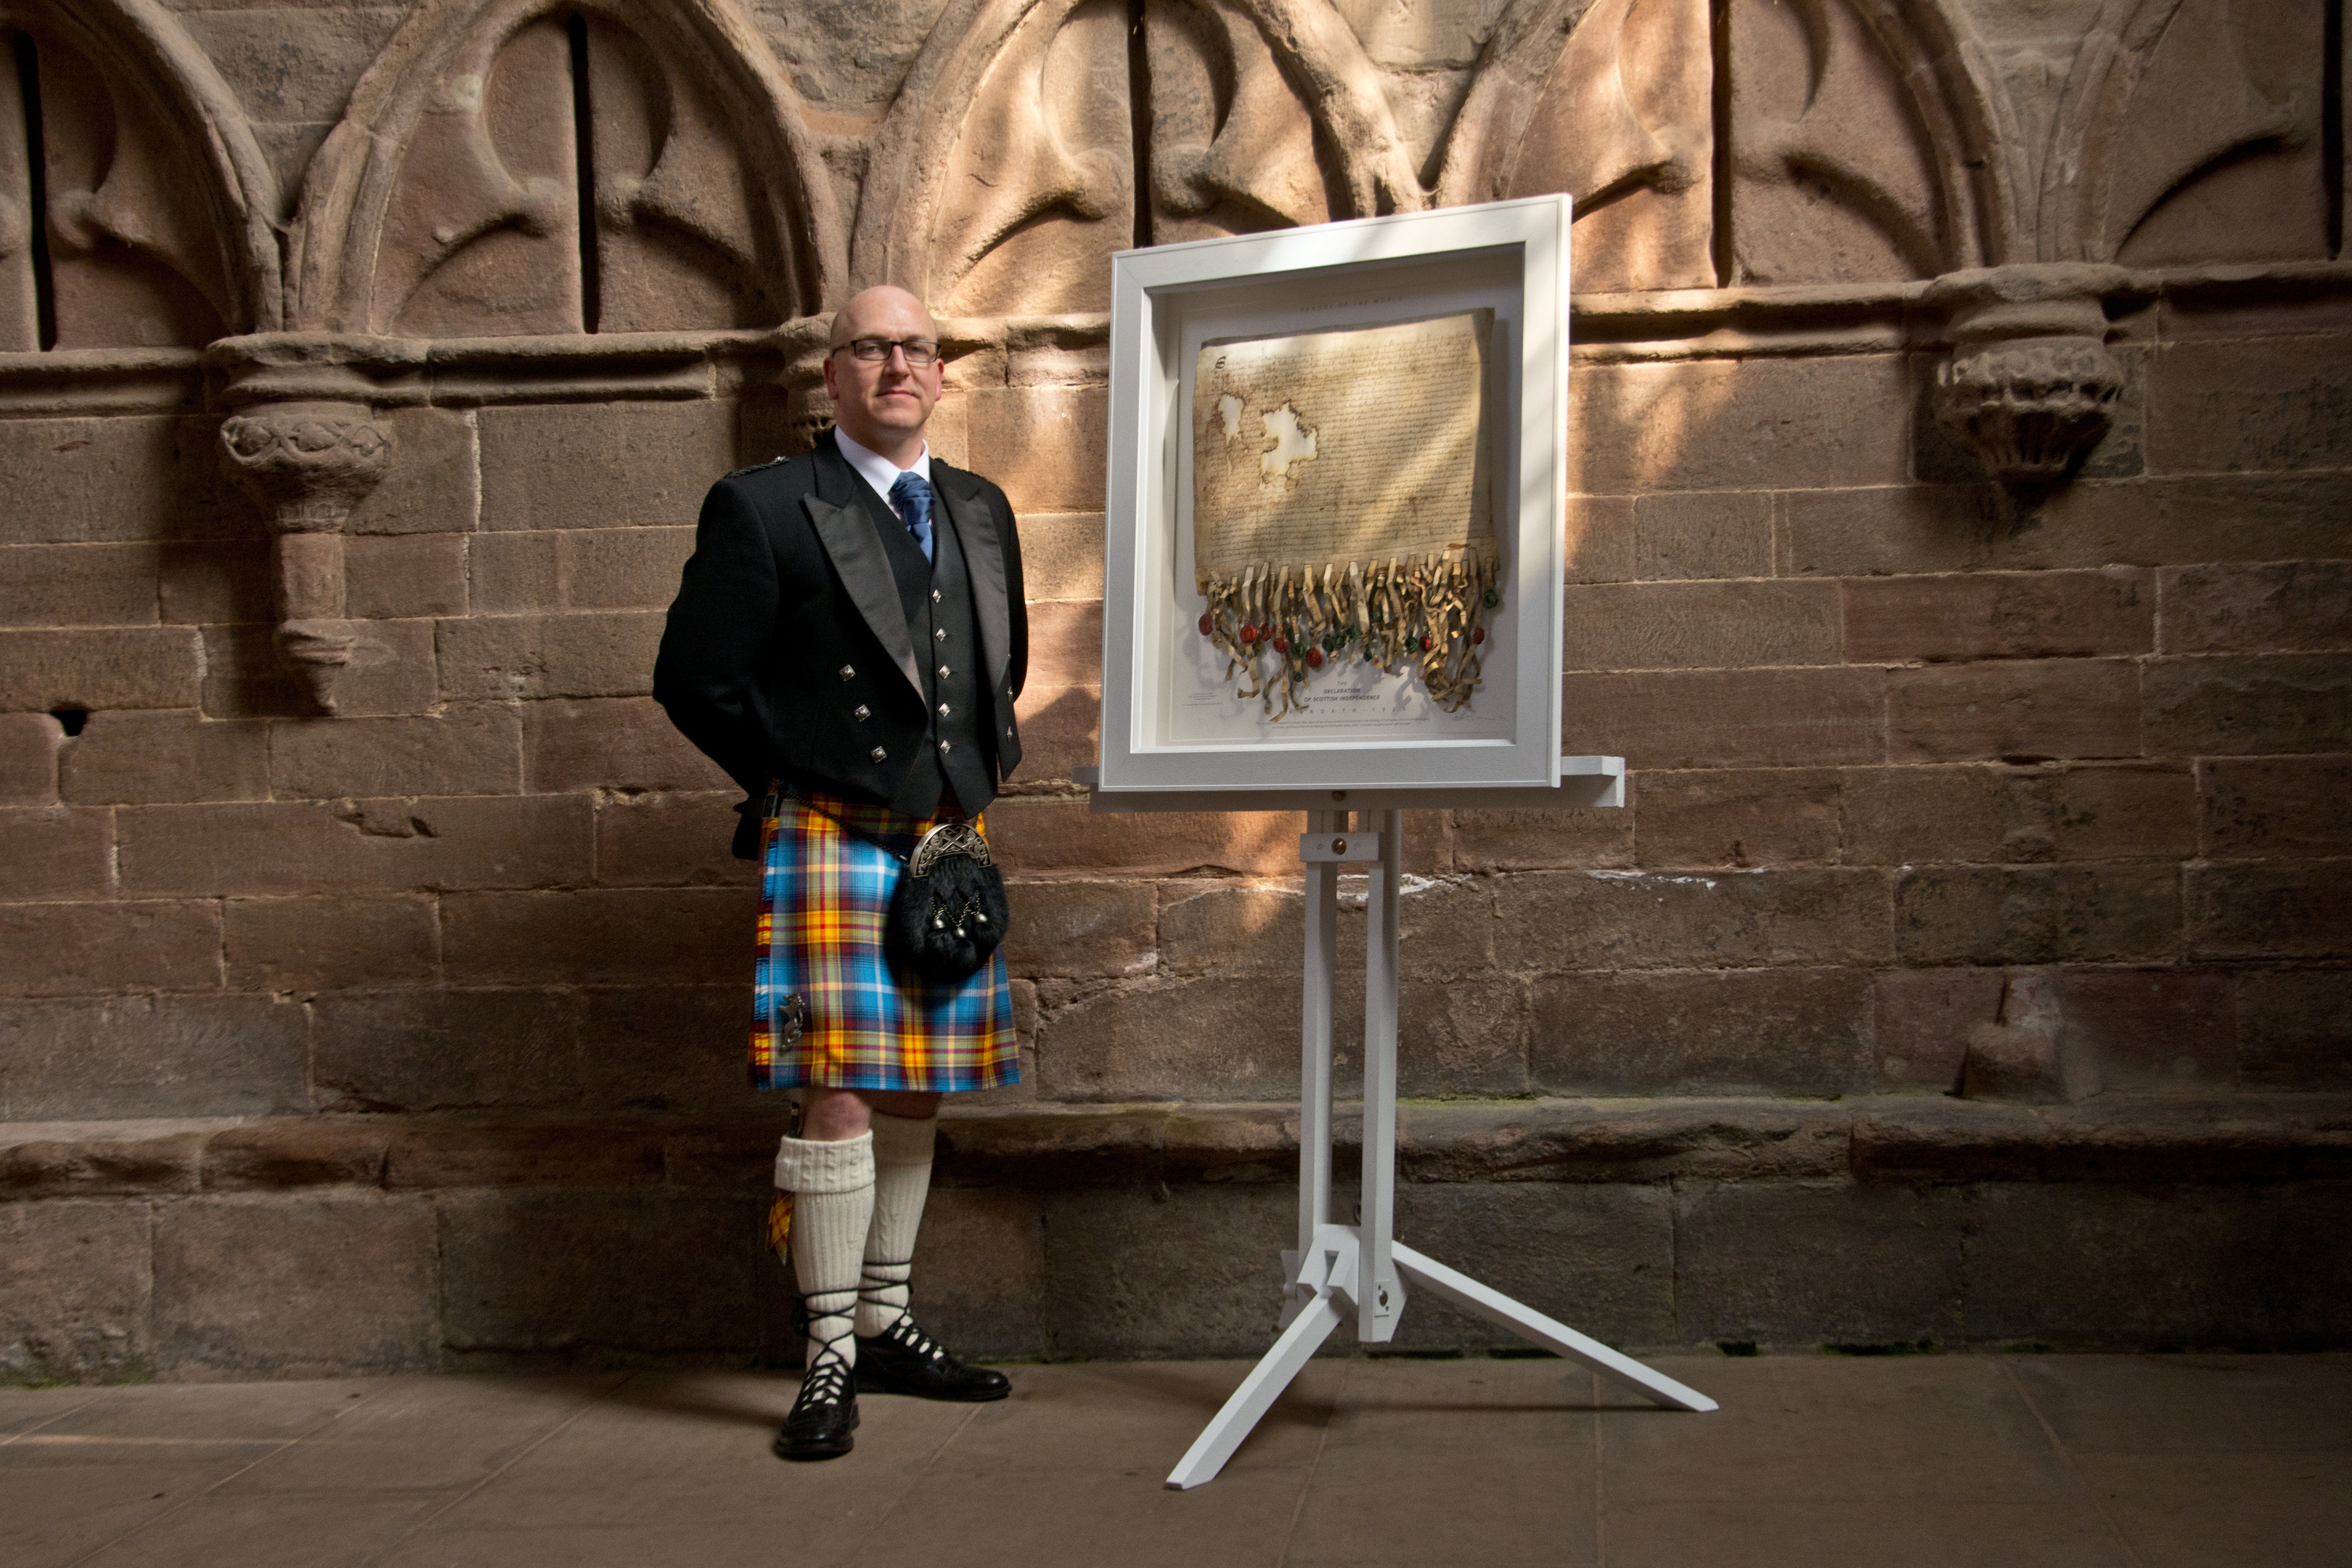 Artist Steven Patrick Sim with his replica of The Declaration of Arbroath at Arbroath Abbey.